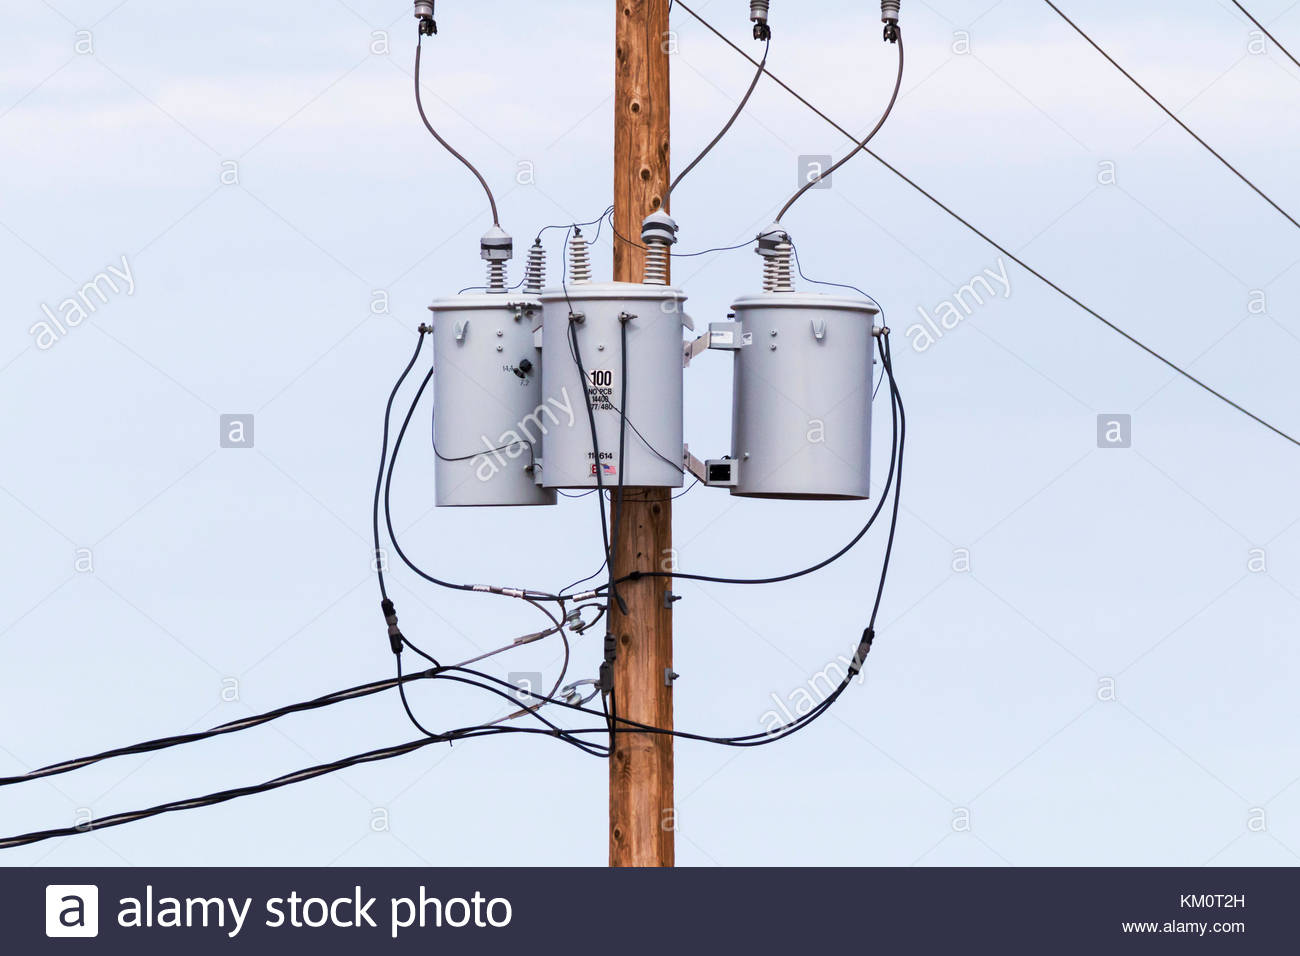 hight resolution of three phase power transformers on pole in arizona usa